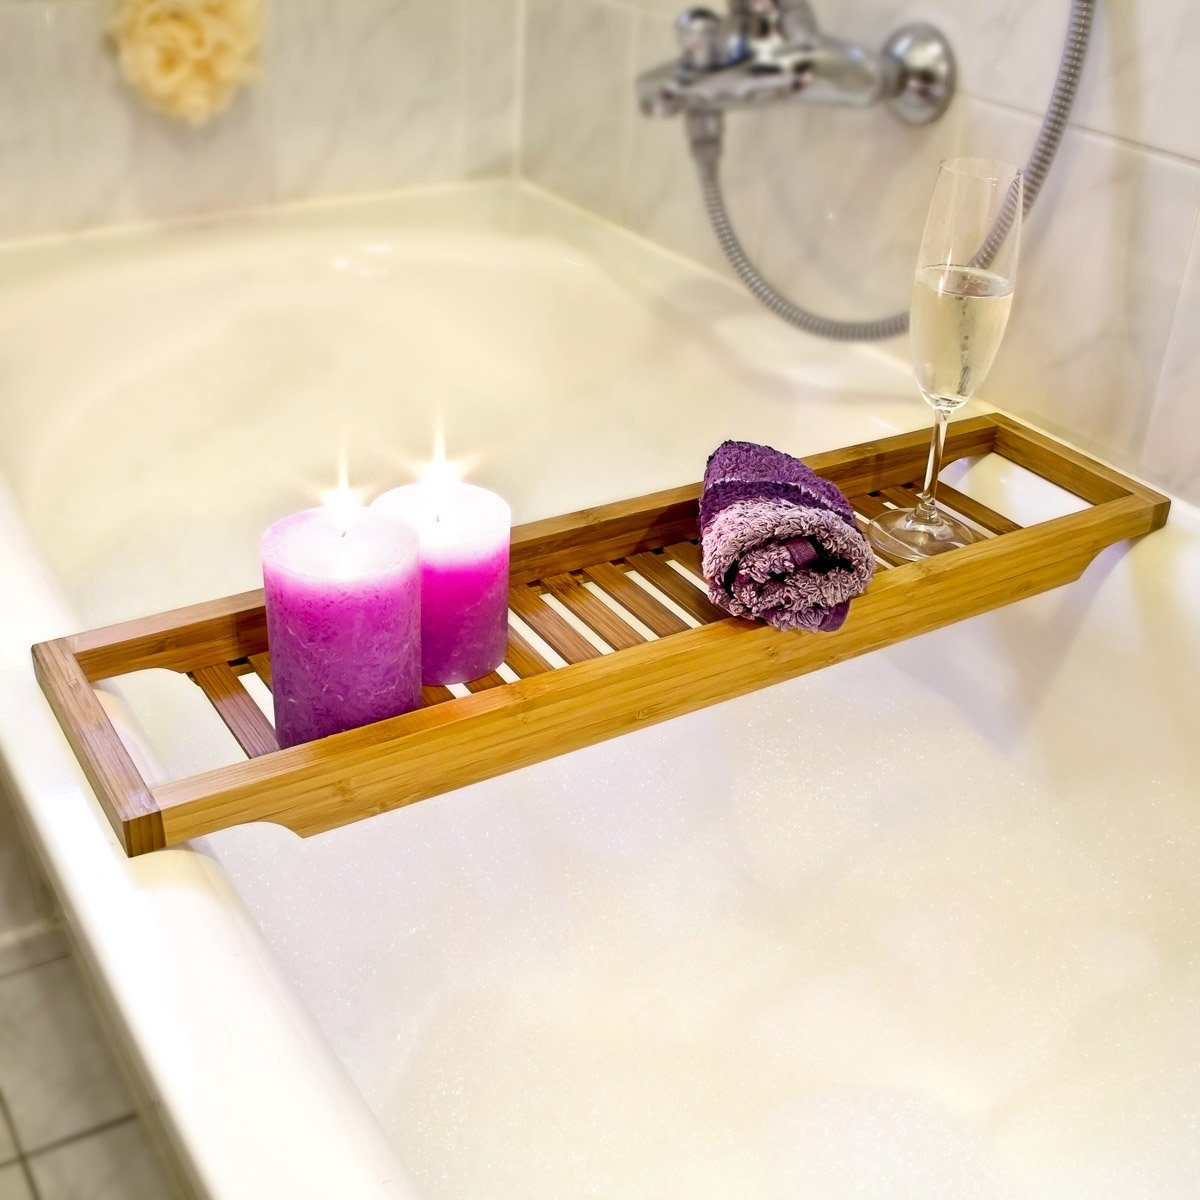 Slim Bamboo Bath Bridge, Bamboo Bath Shelf: Amazon.co.uk: DIY & Tools